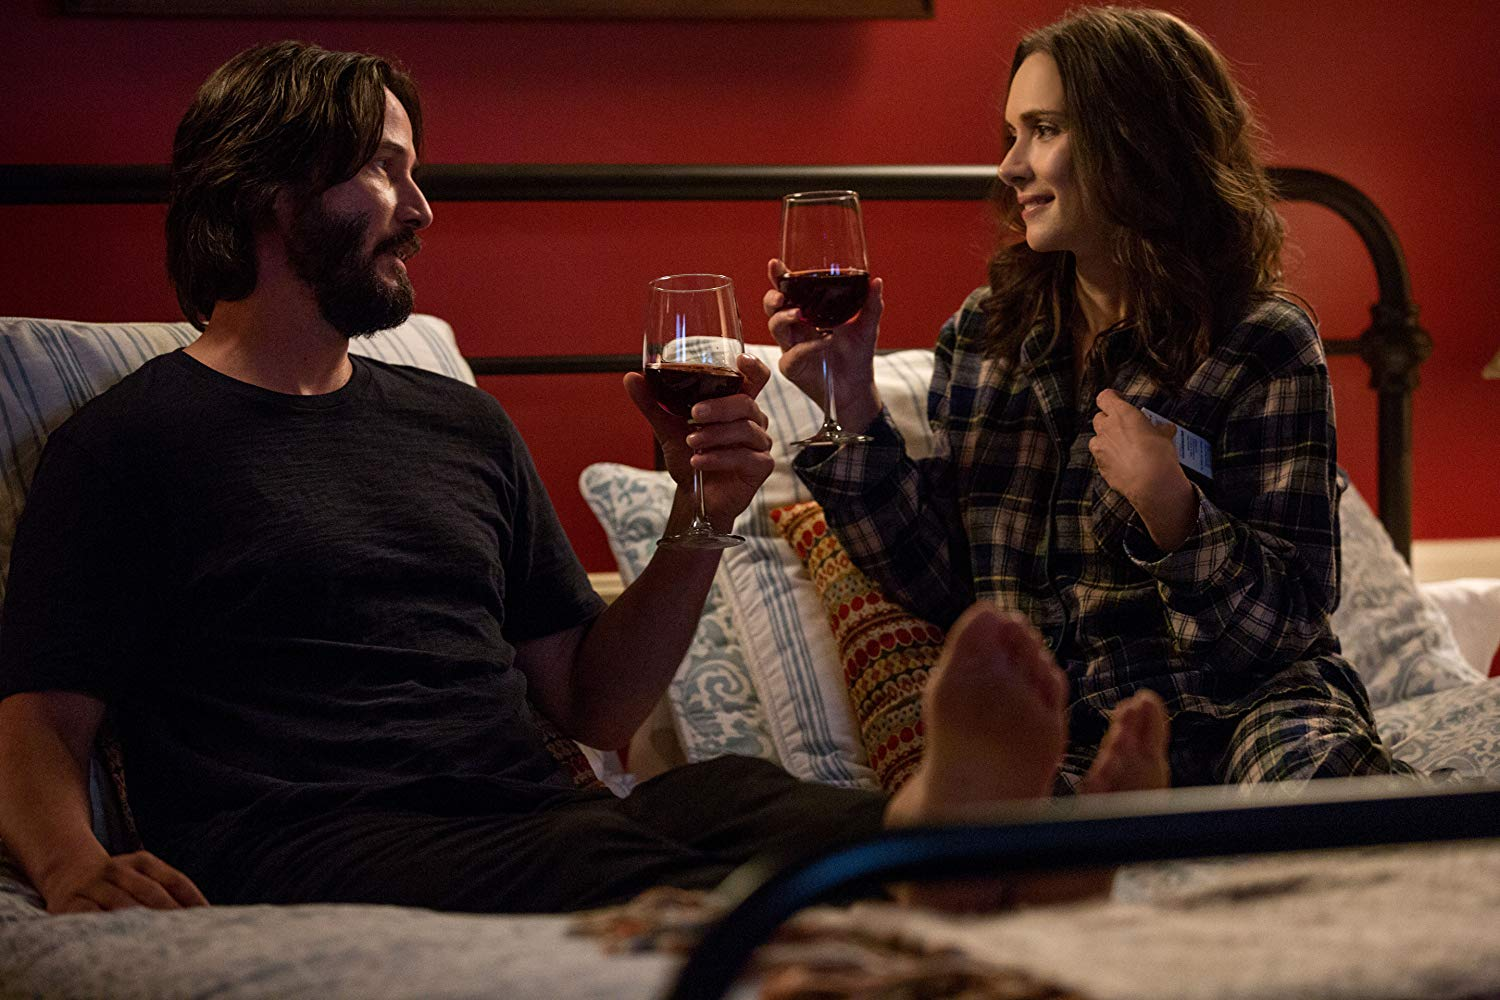 Destination Wedding (Victor Levin, 2018)  This had to be added on my list. It's Keanu Reeves AND Winona Ryder together in a film again. Great verbal jabs between the two of them. When it's funny, it's hilarious, but when it's not, it's slightly grating. A film that is cynical with a sprinkle of hope. Keanu has the best lines and delivery, and I'd watch it again for that reason alone.